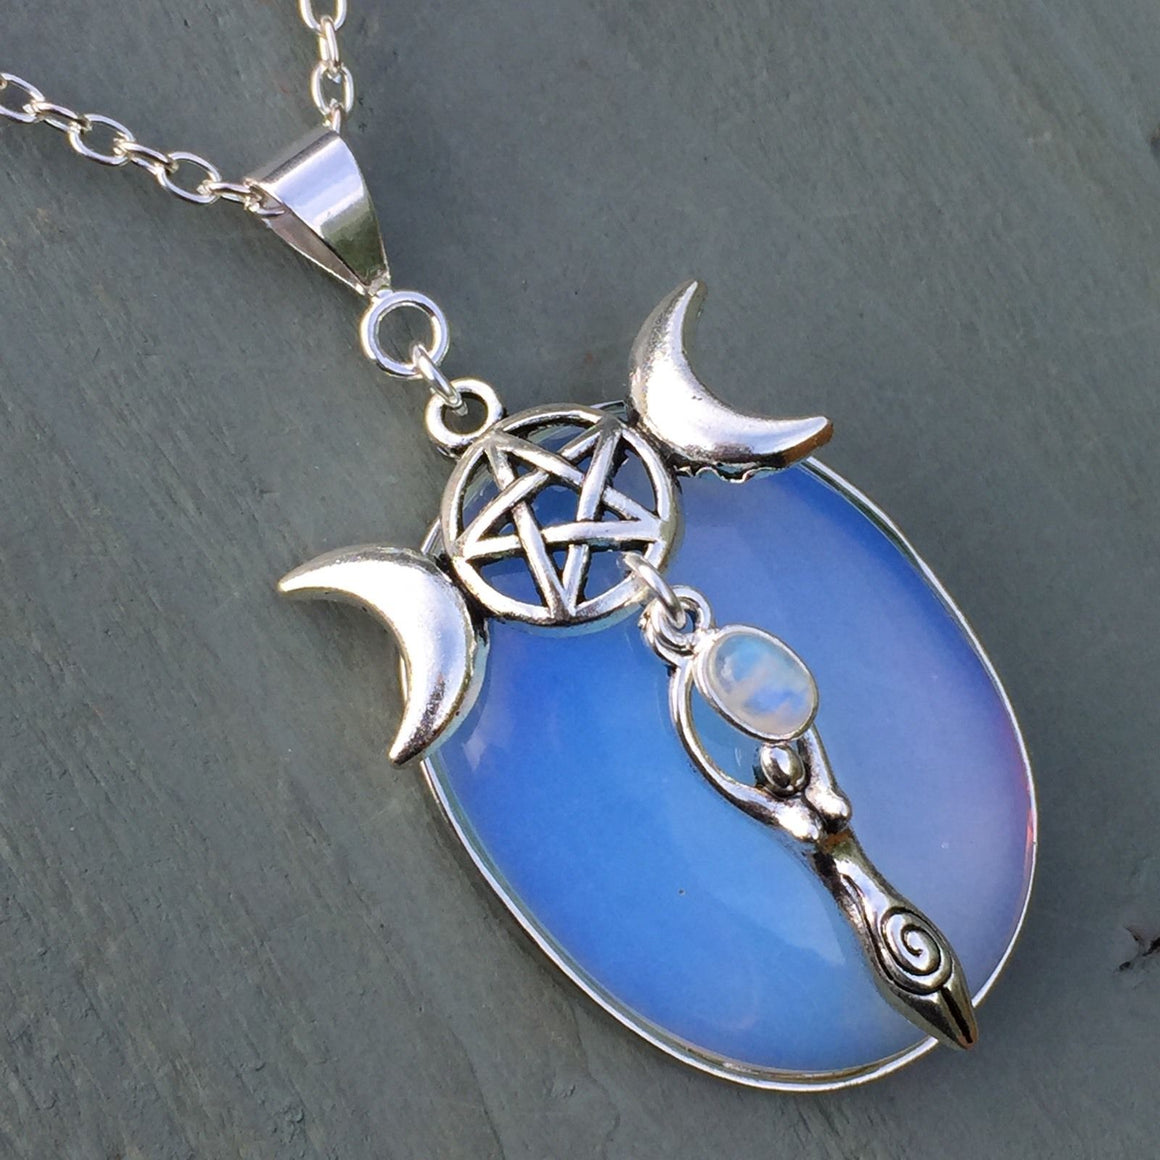 Triple Goddess Wicca Necklace